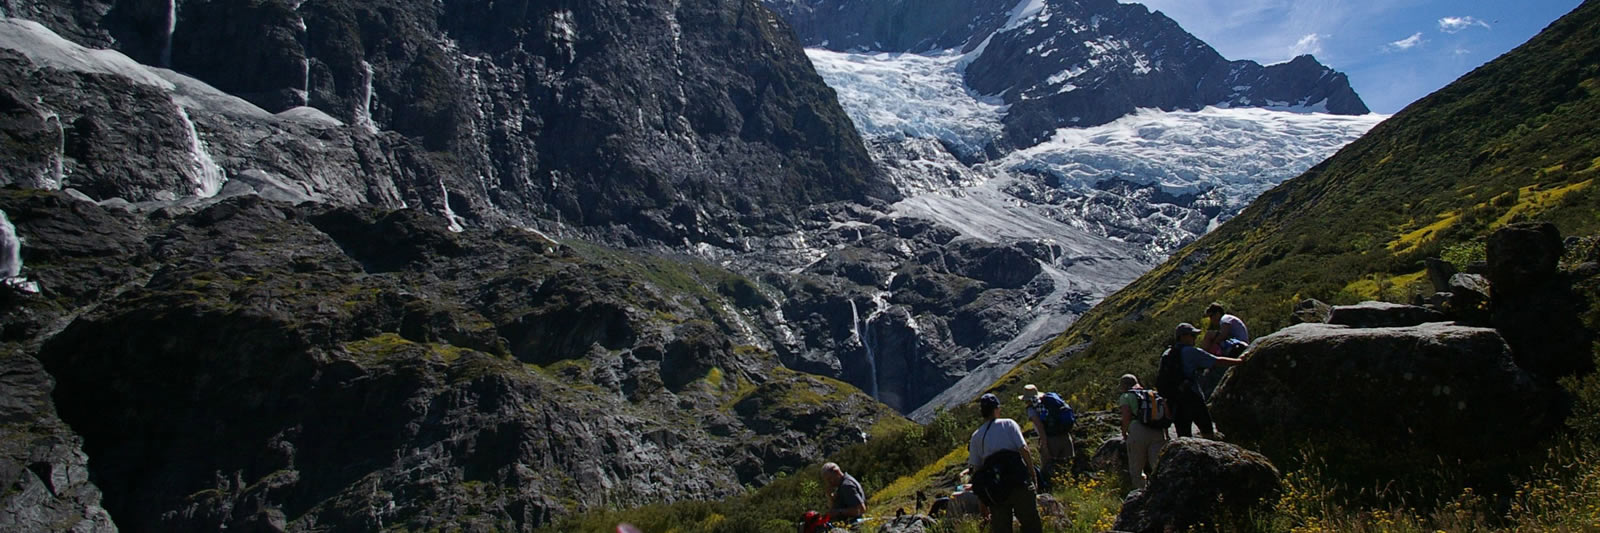 Rob Roy Glacier Guided Hike Lookout